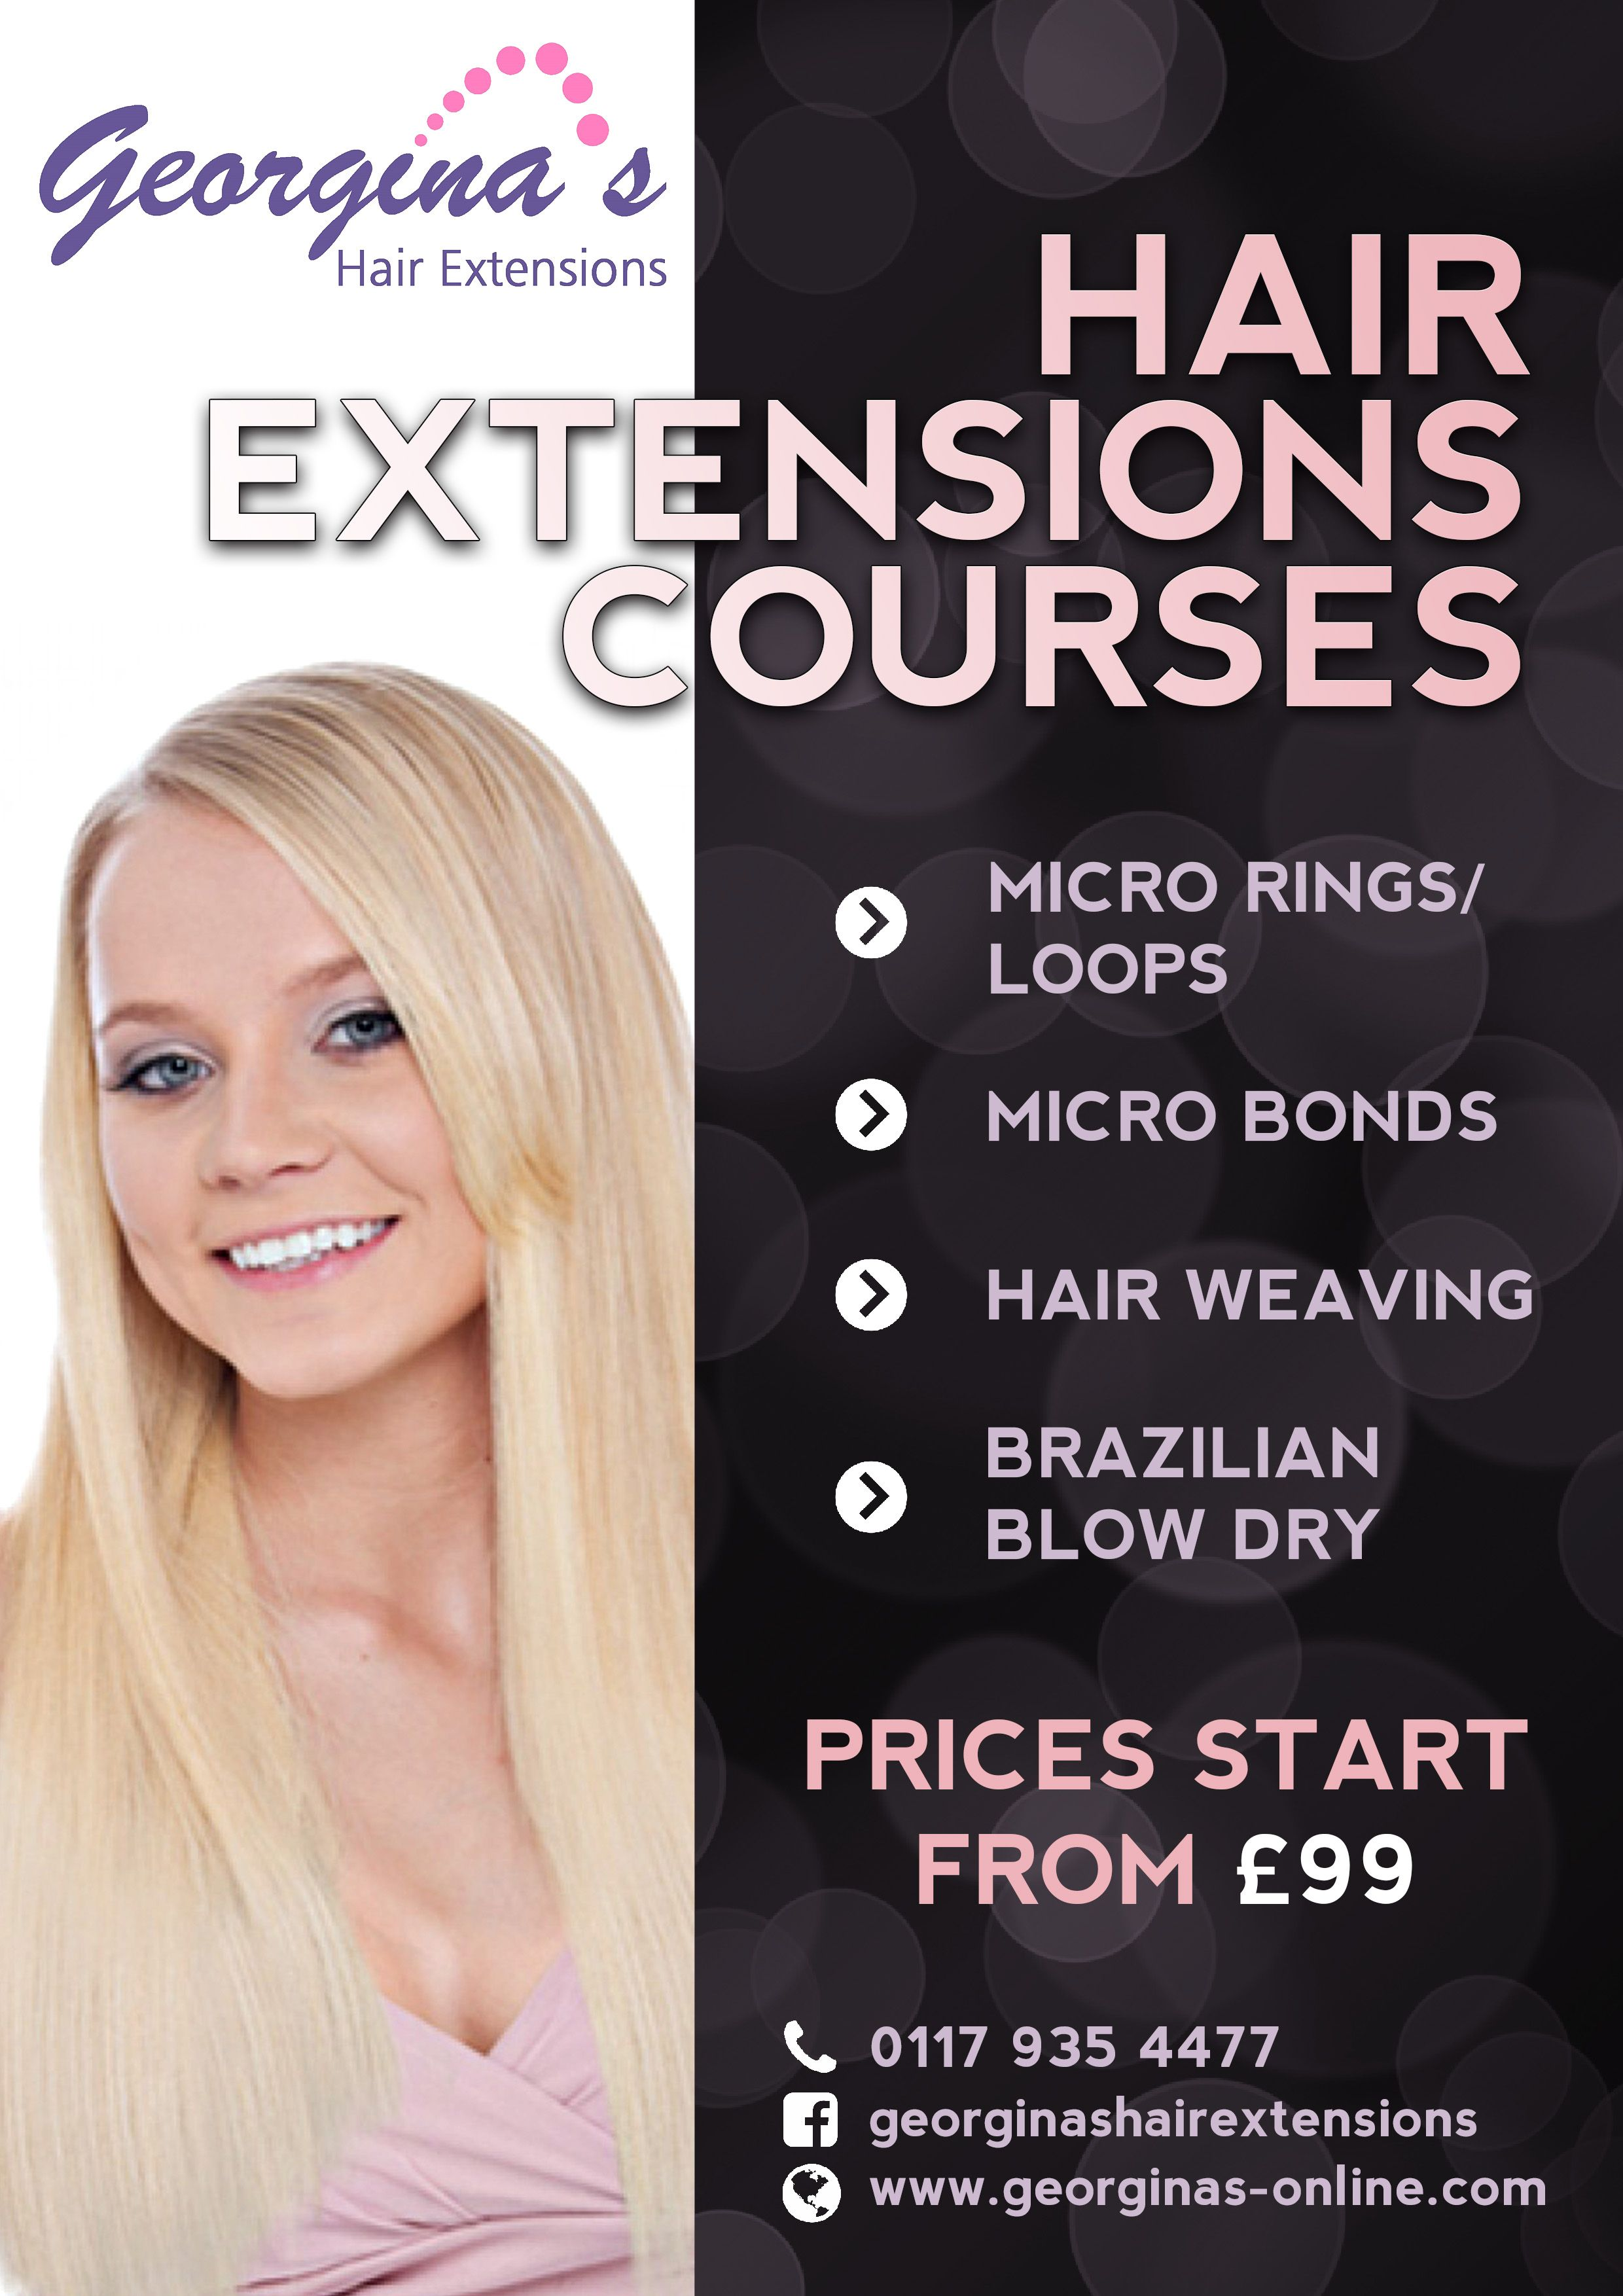 Cheap Hair Extensions Courses Hairextensionscourses